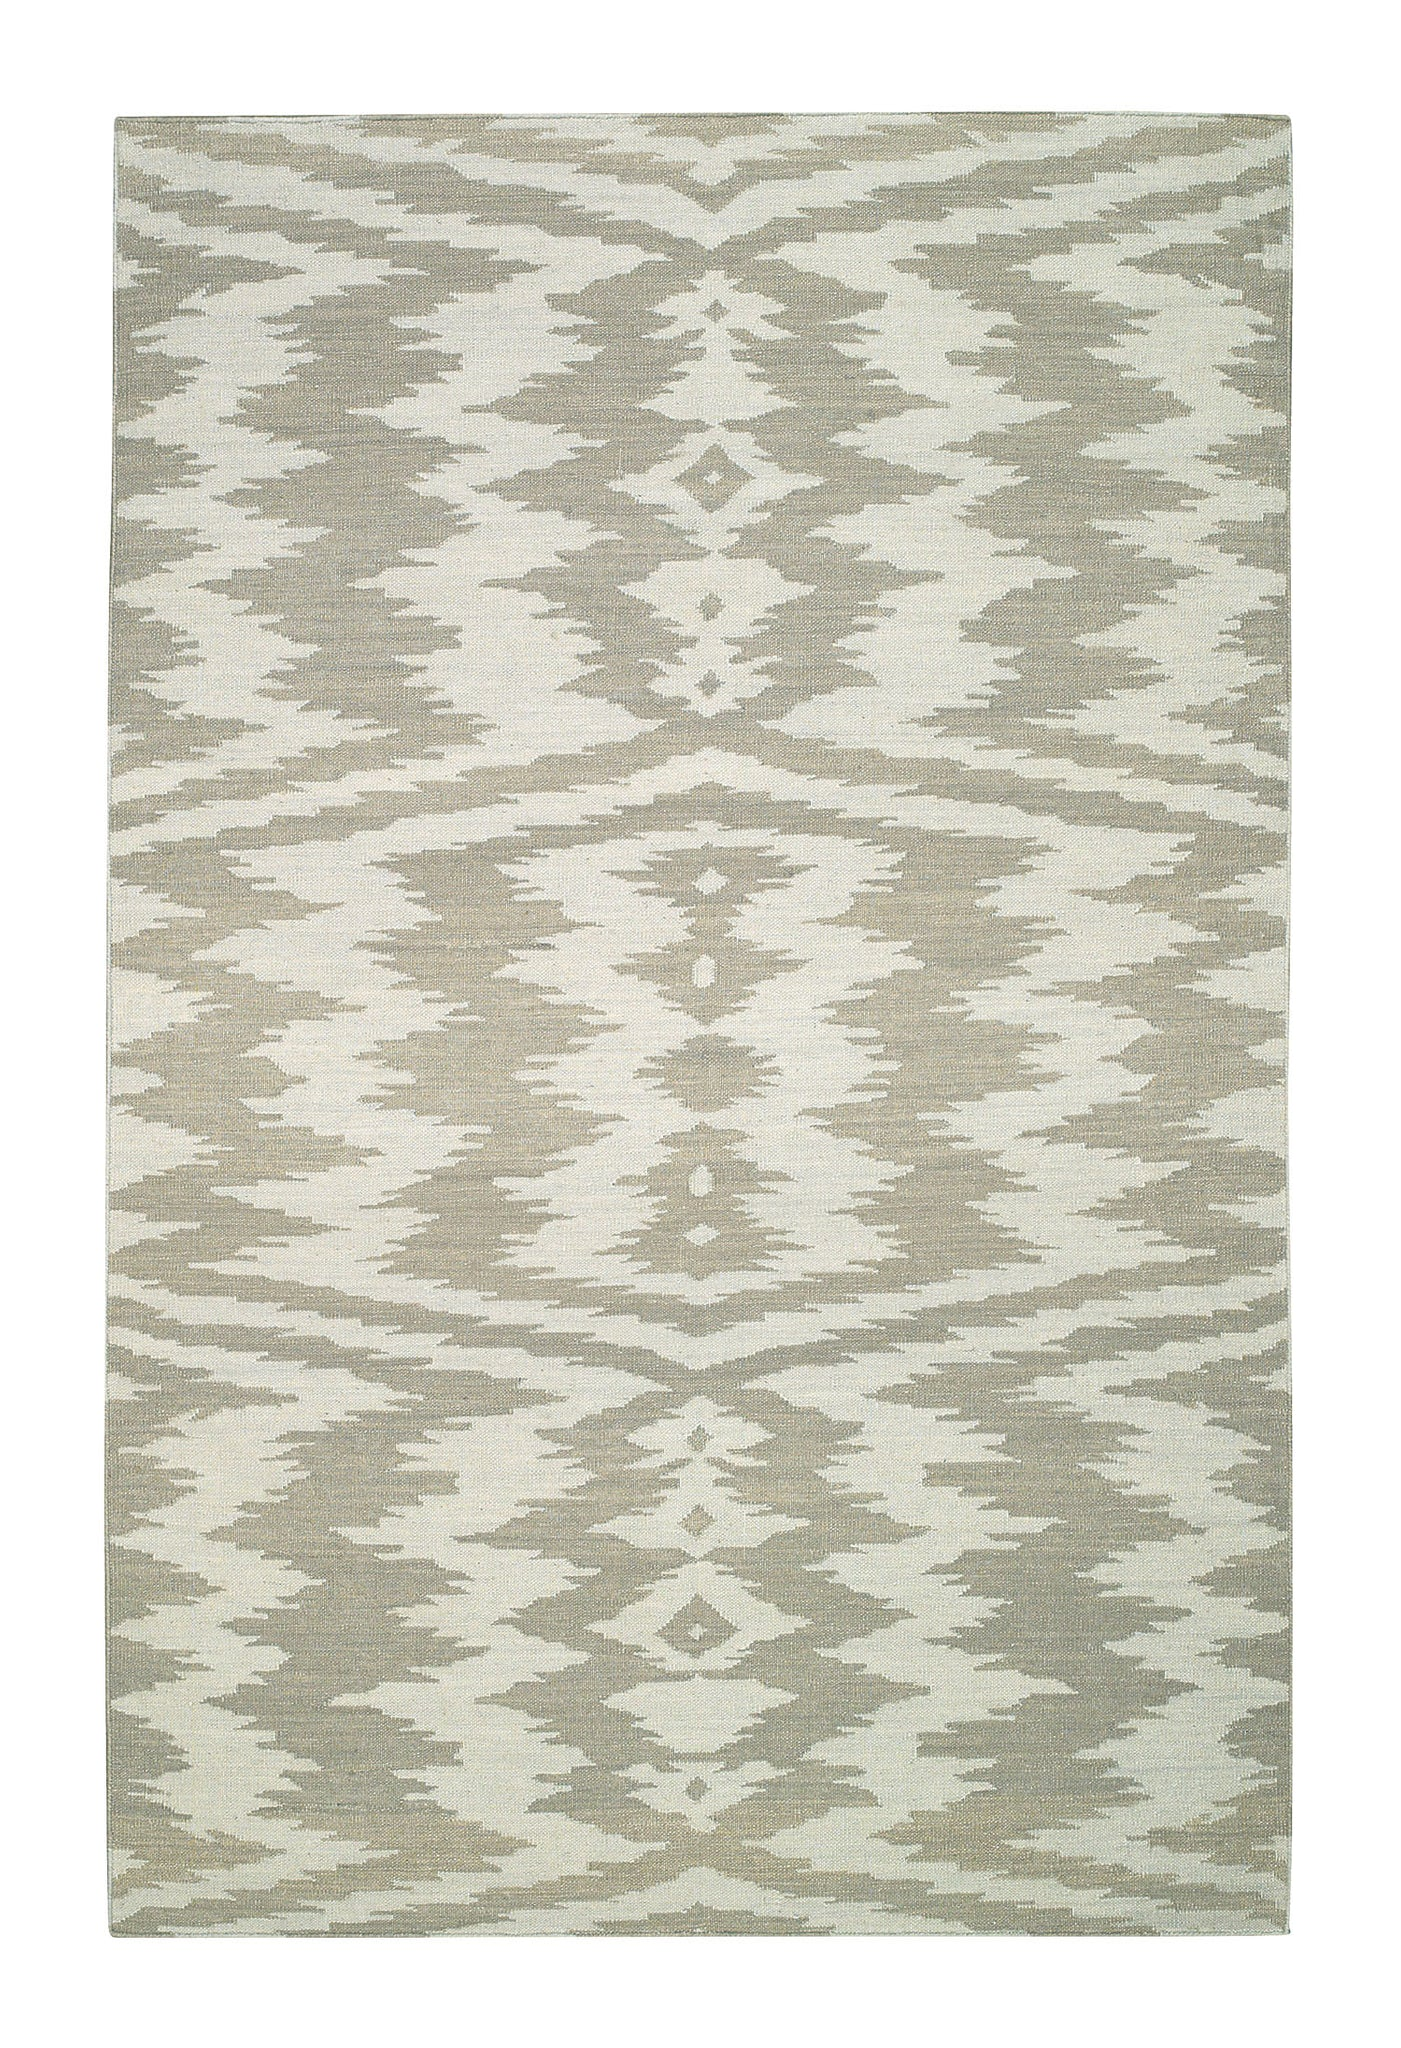 Capel Junction 3625 Beige 700 Area Rug by Genevieve Gorder main image